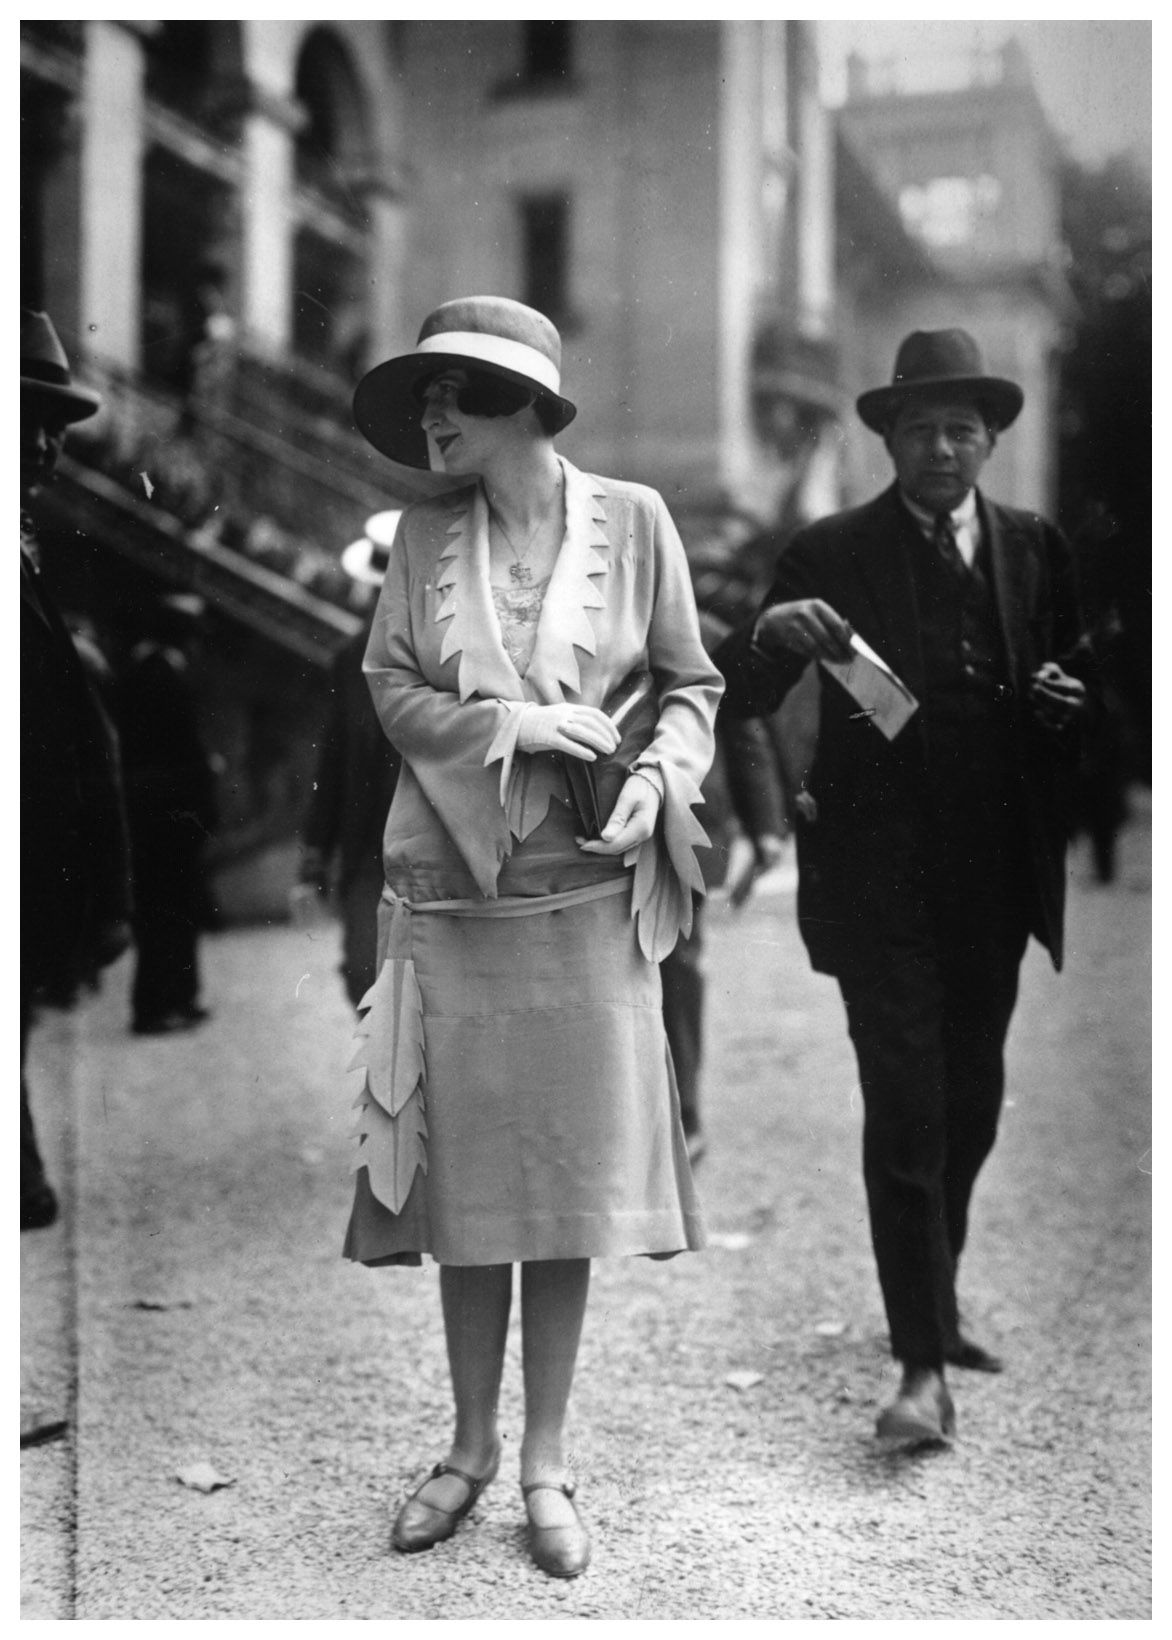 woman models the latest fashion of the day in a Paris street photo >>> photo by Seeberger Brothers, 1921